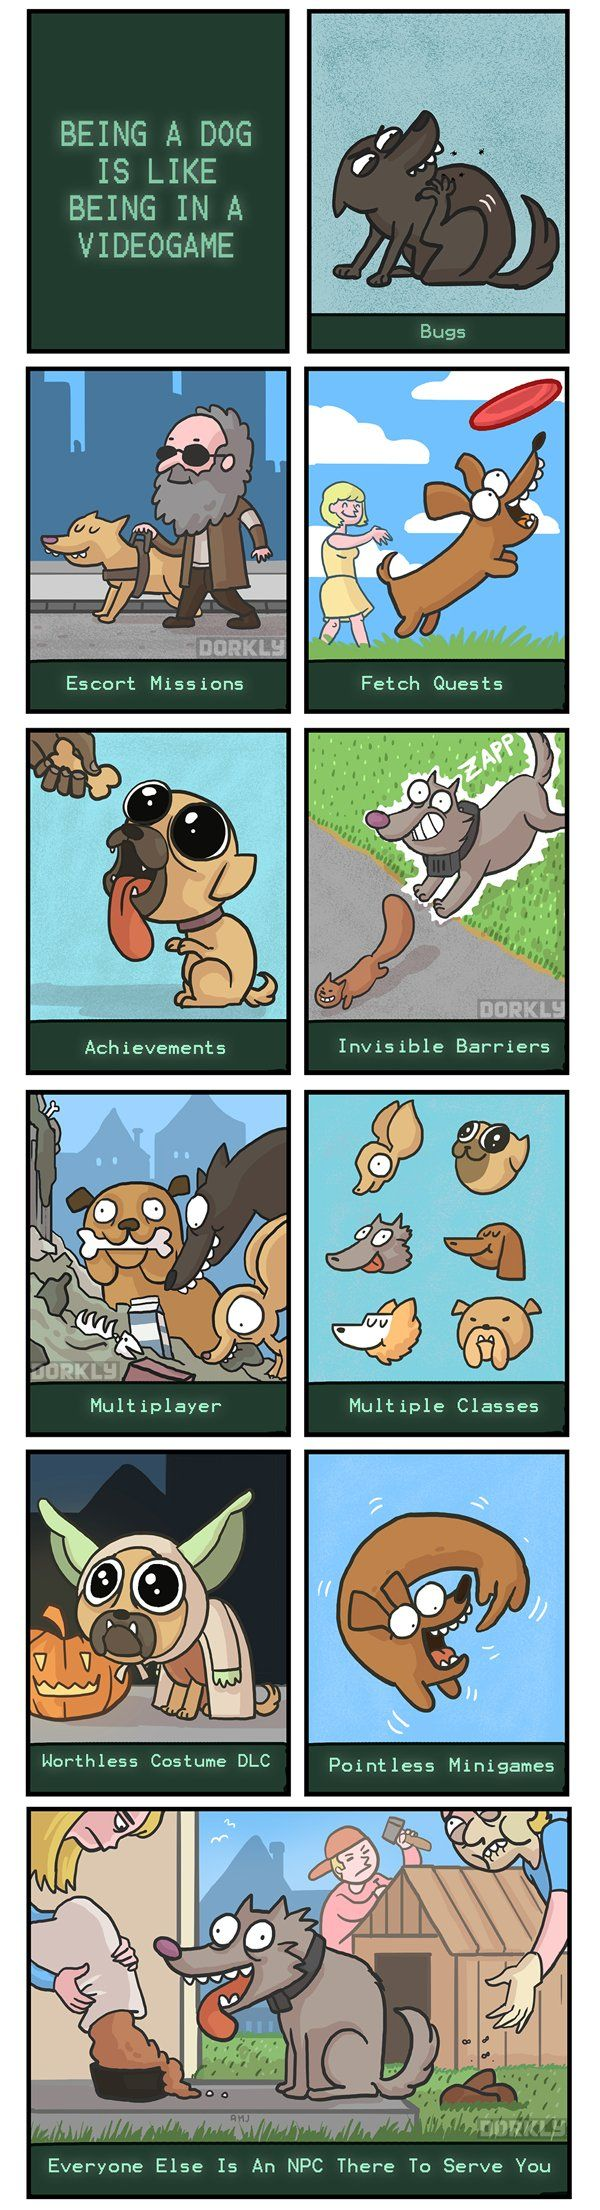 Being a dog is like being in an RPG